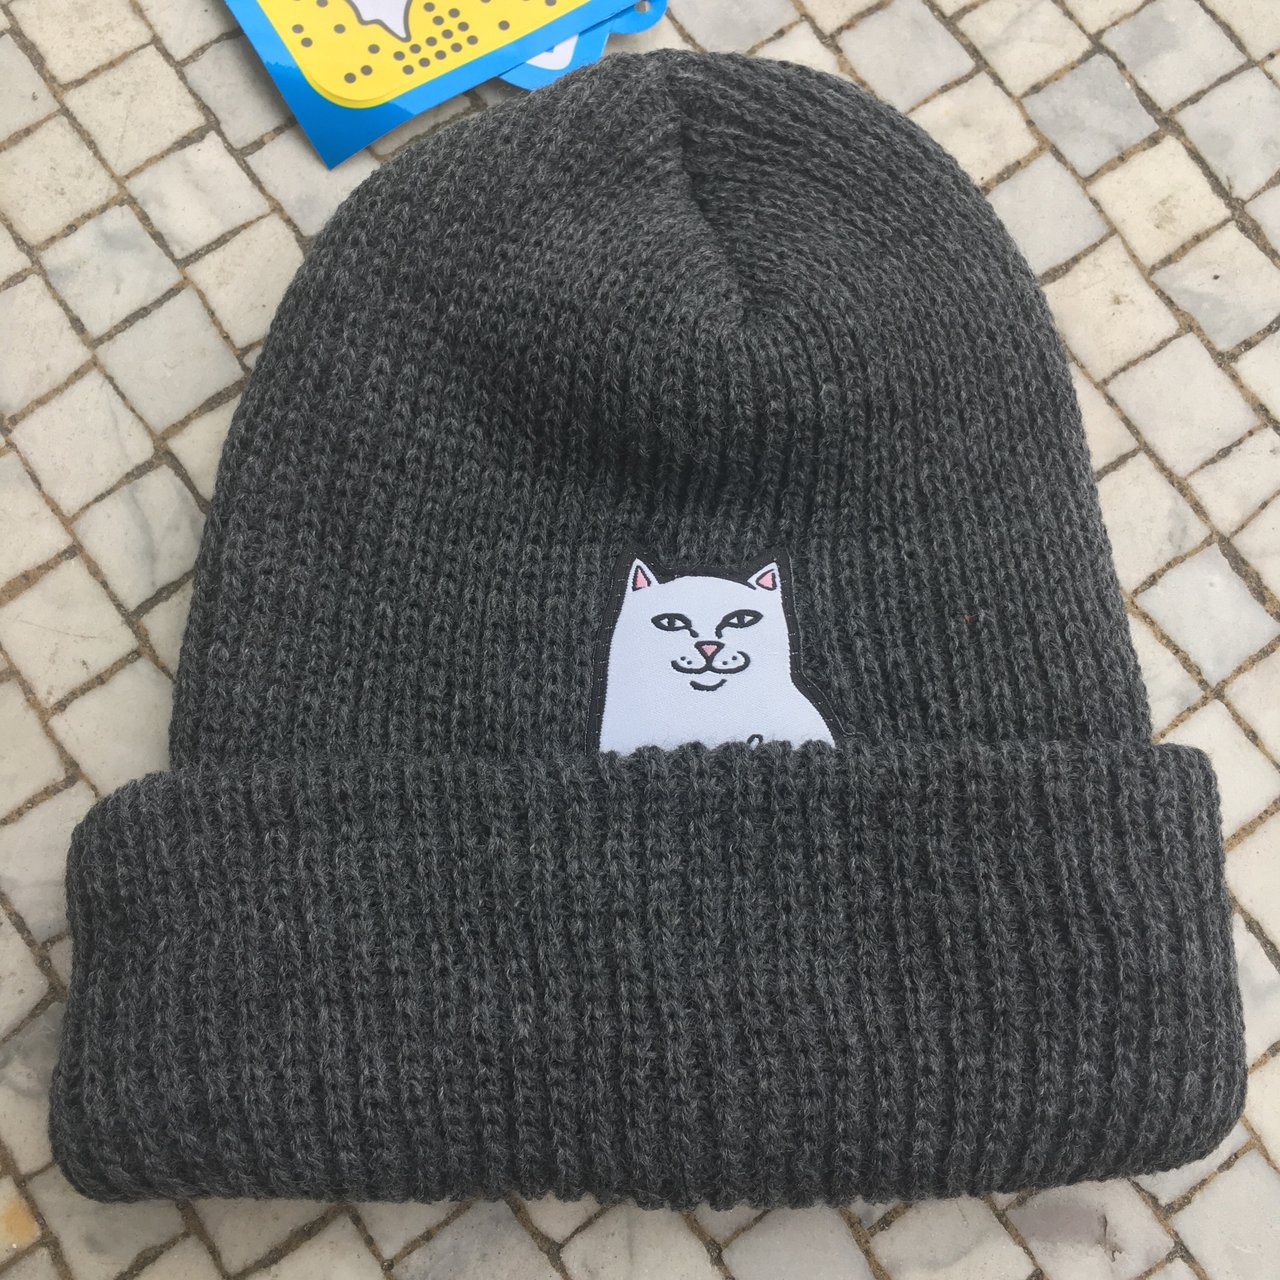 24b2d31c6fcd9 RIPNDIP Dark Grey Lord Nermal Beanie Hat. Brand New With Two - Depop